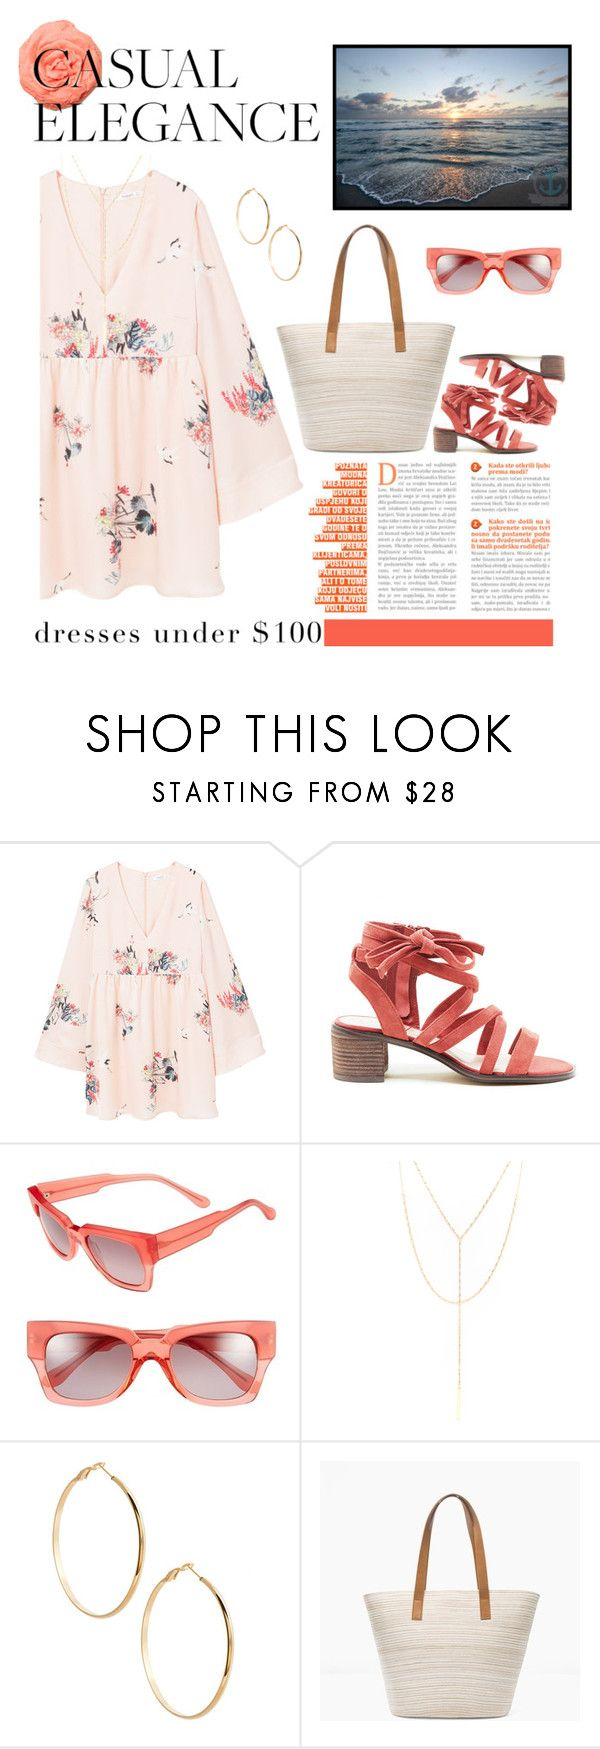 """""""Beach Town"""" by lashanna-bing ❤ liked on Polyvore featuring MANGO, Sole Society, Marni, South Moon Under, GUESS by Marciano and Chico's"""